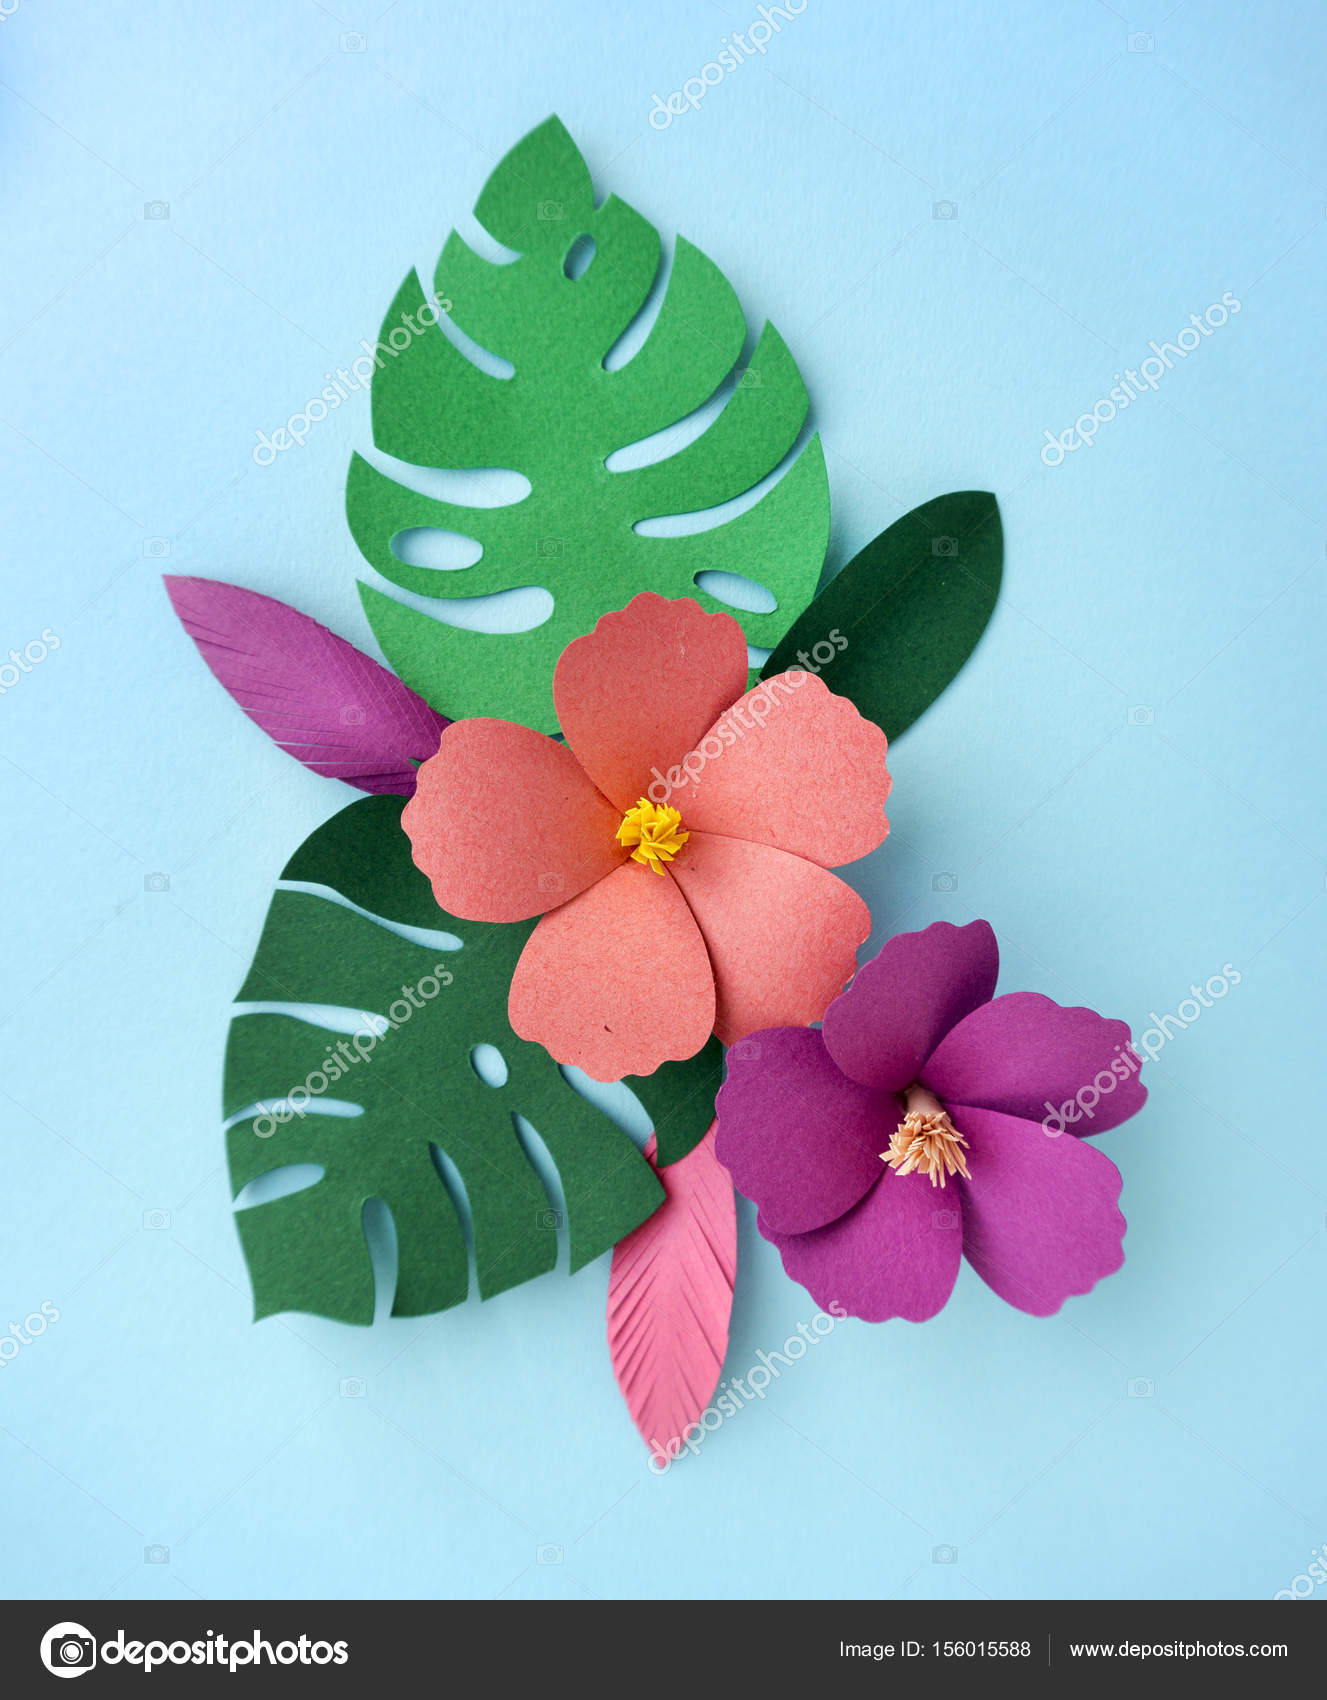 Tropical papercraft flowers stock photo rawpixel 156015588 tropical papercraft flowers stock photo mightylinksfo